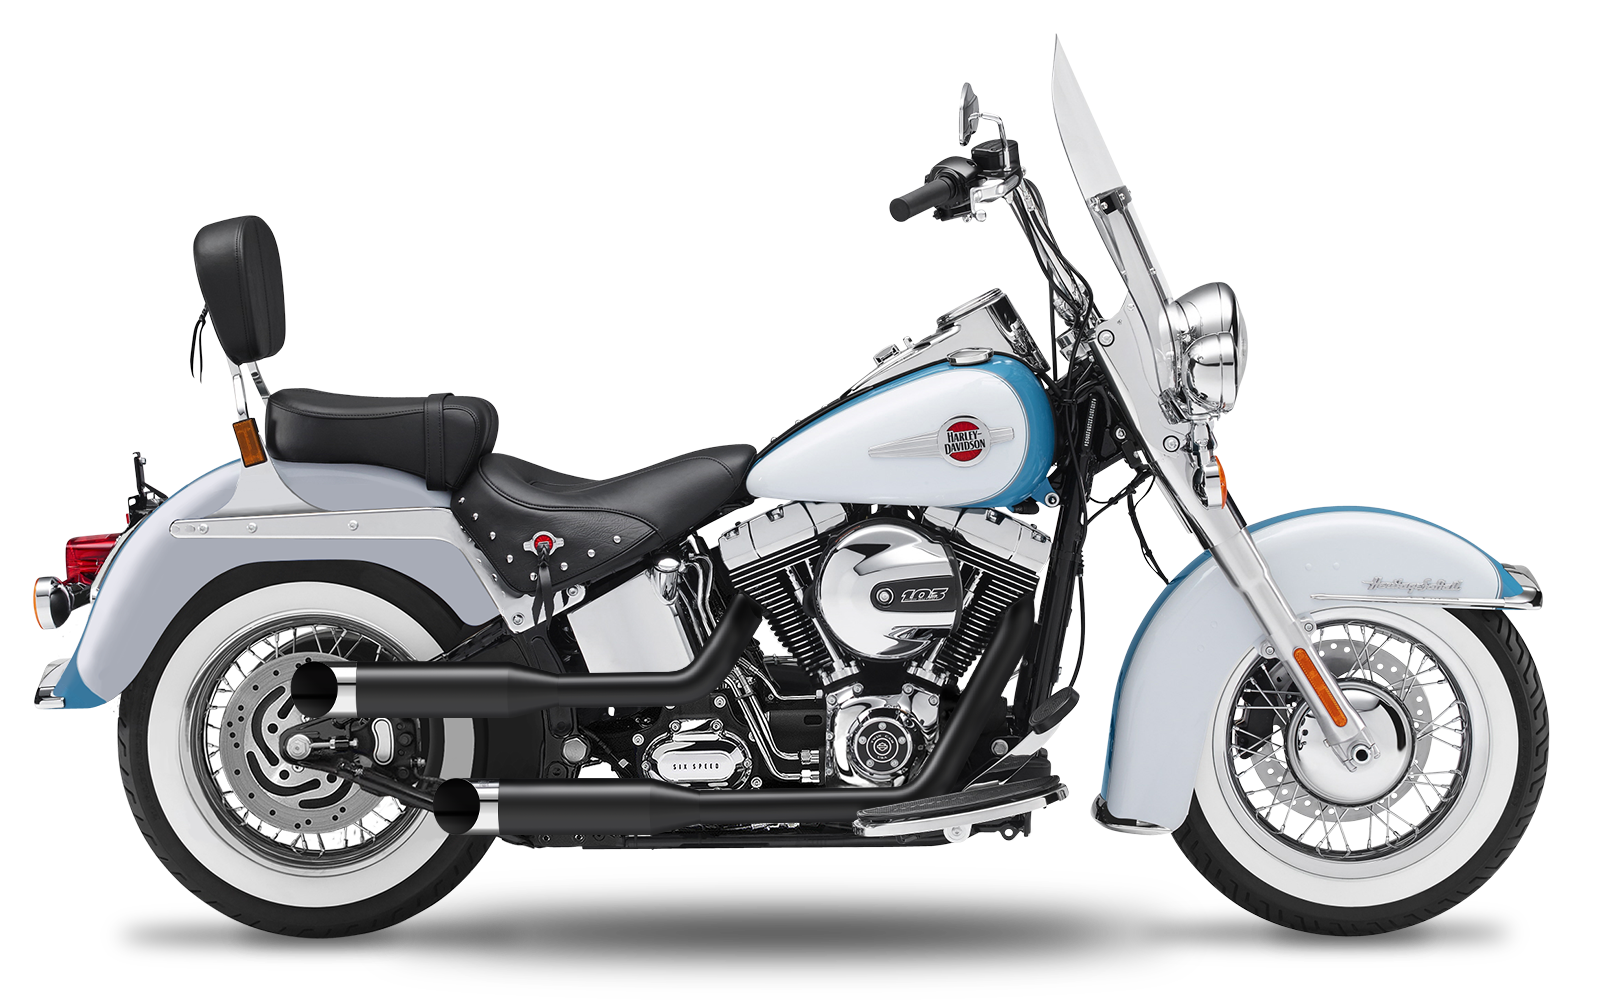 Softail - Heritage Classic - TC96 - 2007-2011 - Complete systems adjustable